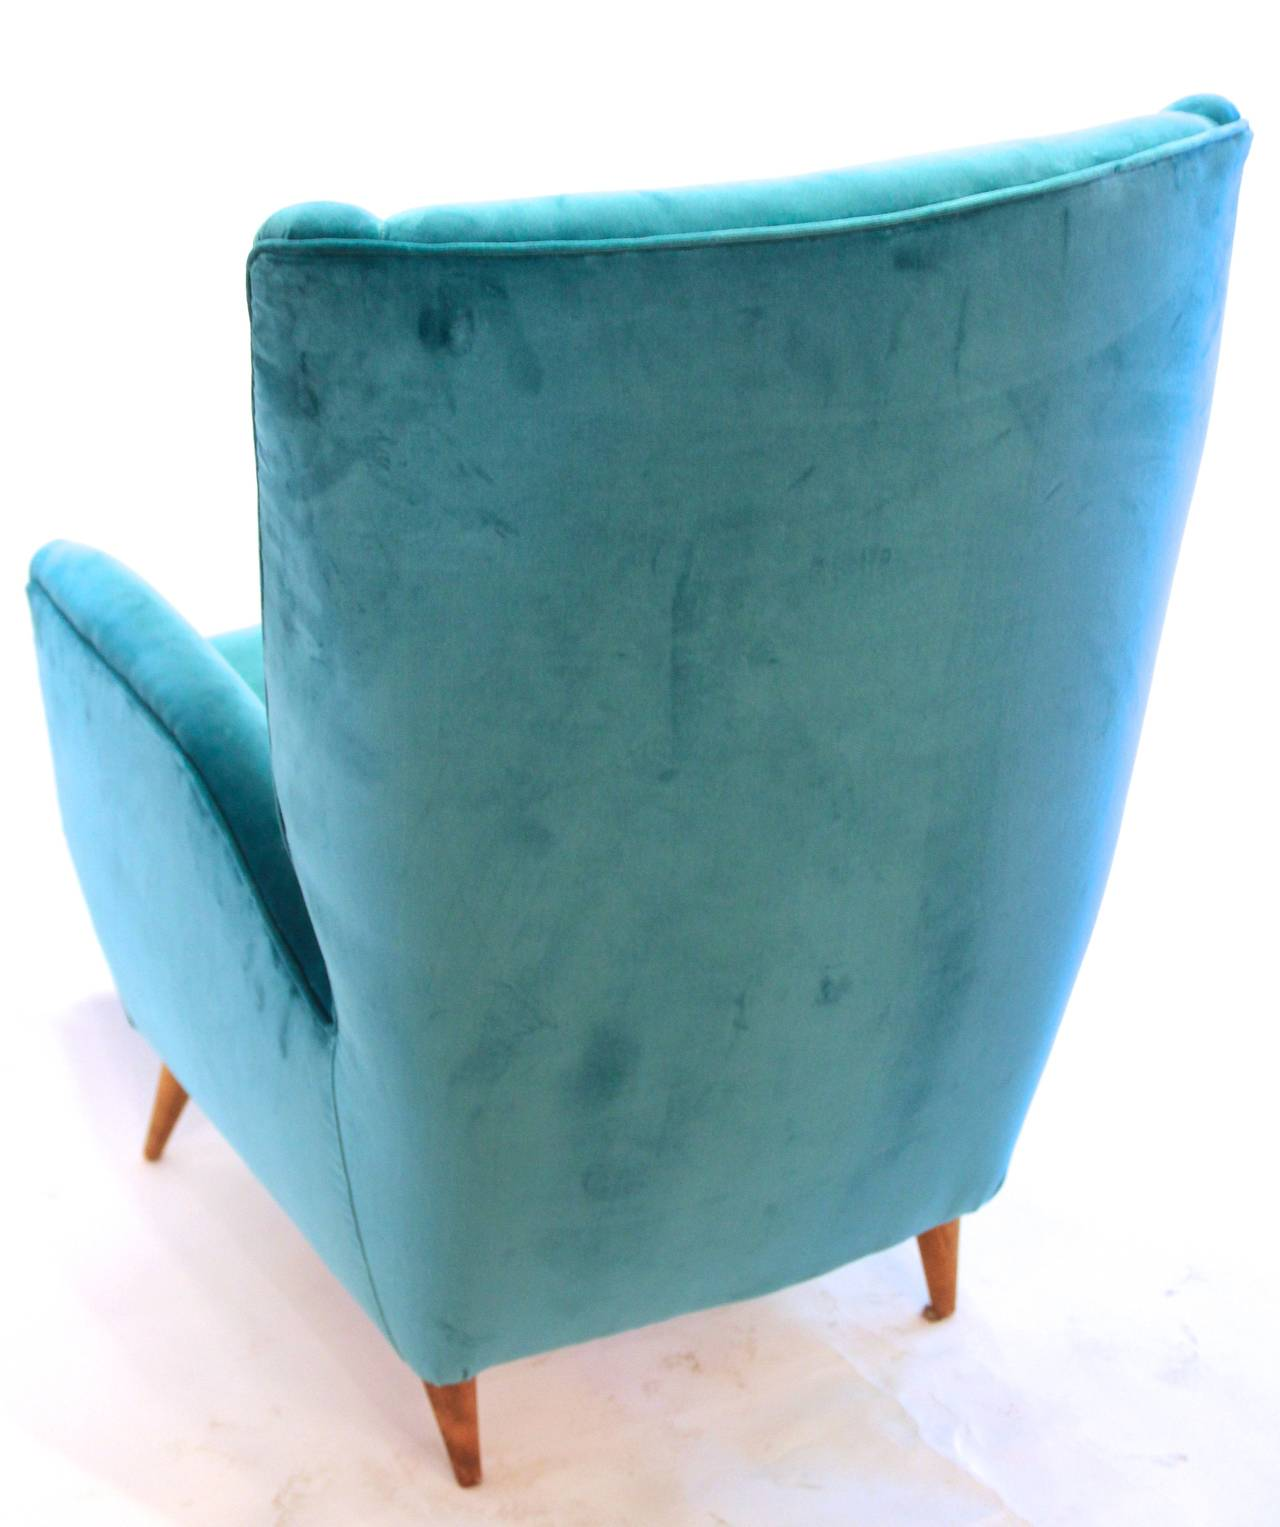 Pair of Armchairs by Gio Ponti, Textile and Wood Feet, circa 1950, Italy 4